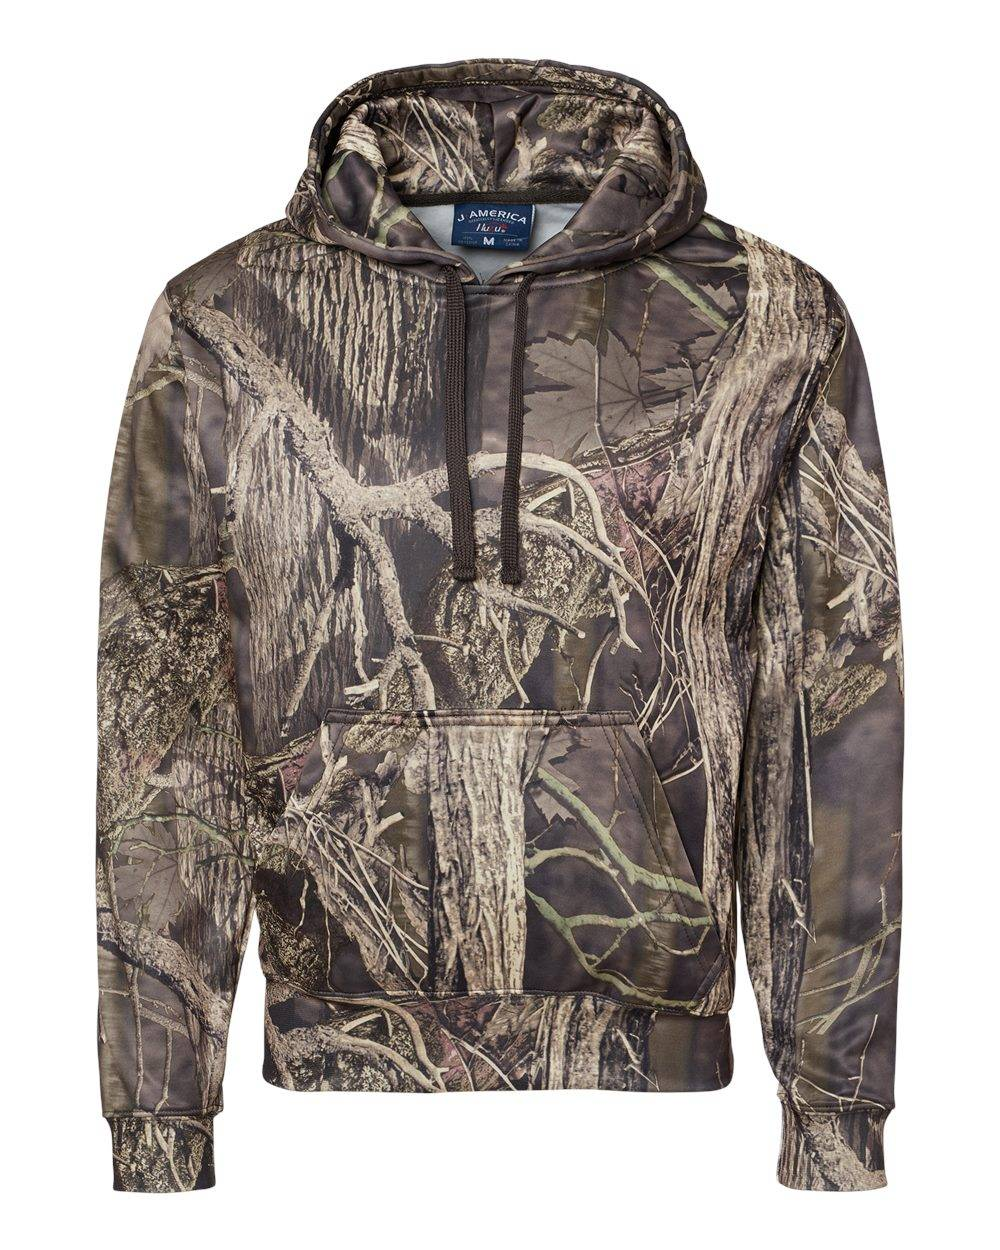 J. America - Polyester Tailgate Hooded Sweatshirt - 8615 - Outdoor Camo - Large